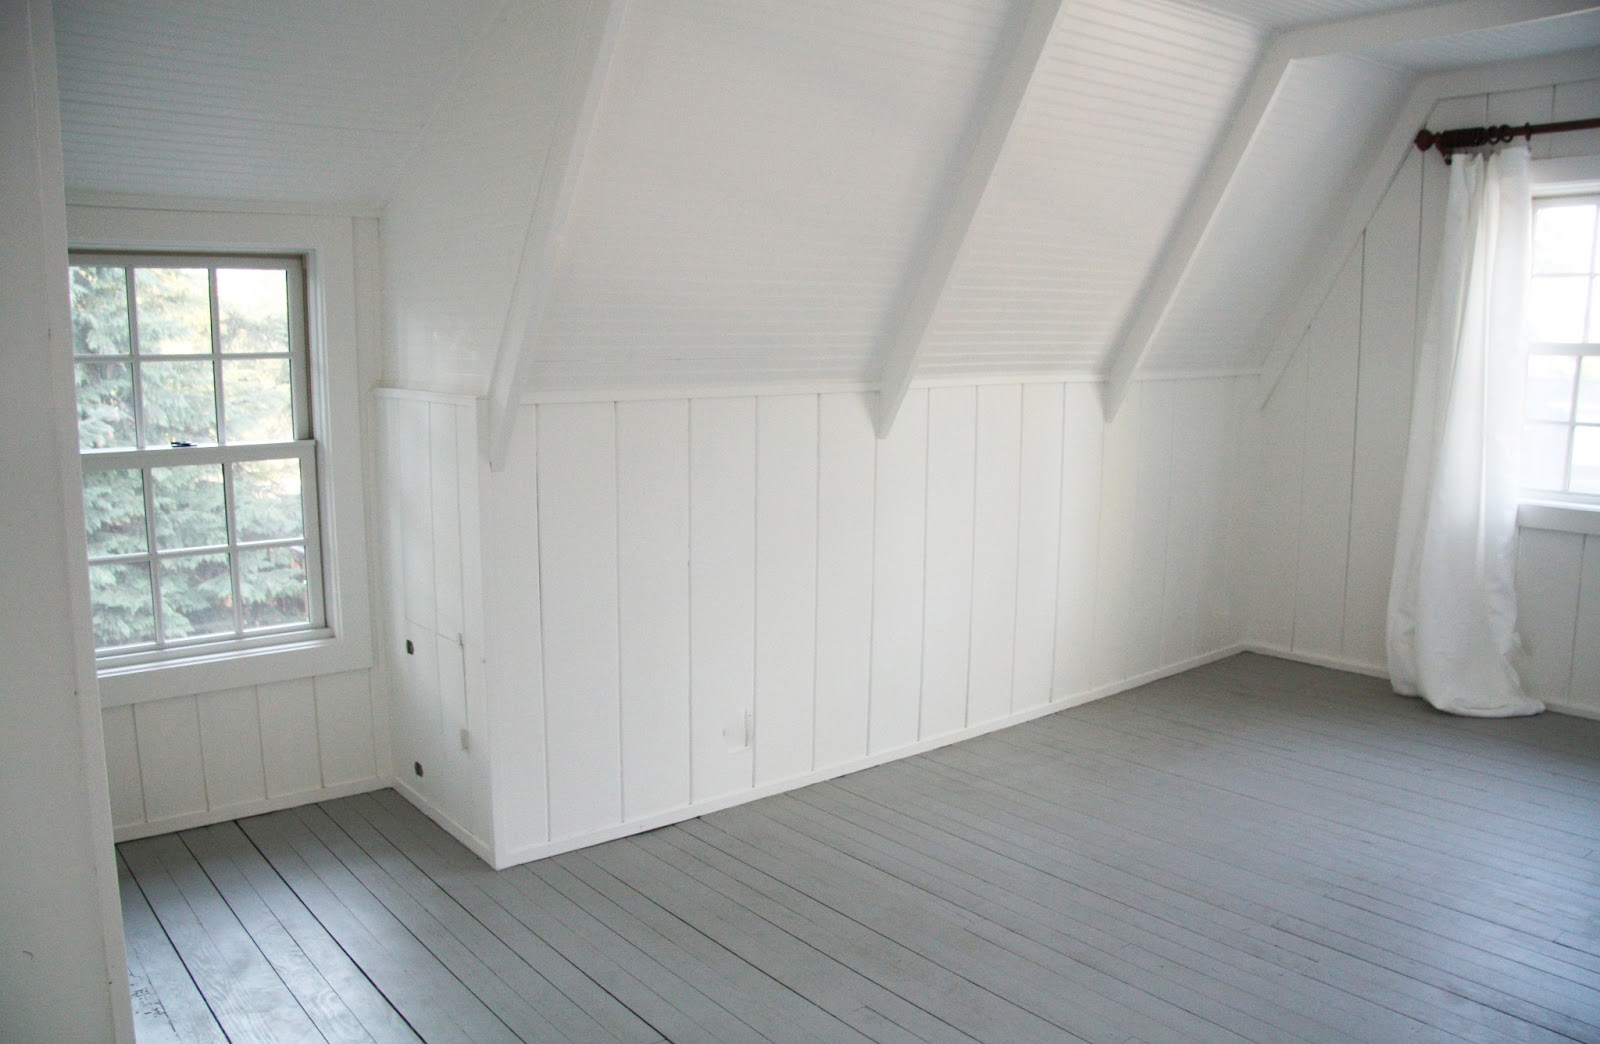 In the fields guest house windows for Best paint for wooden floors